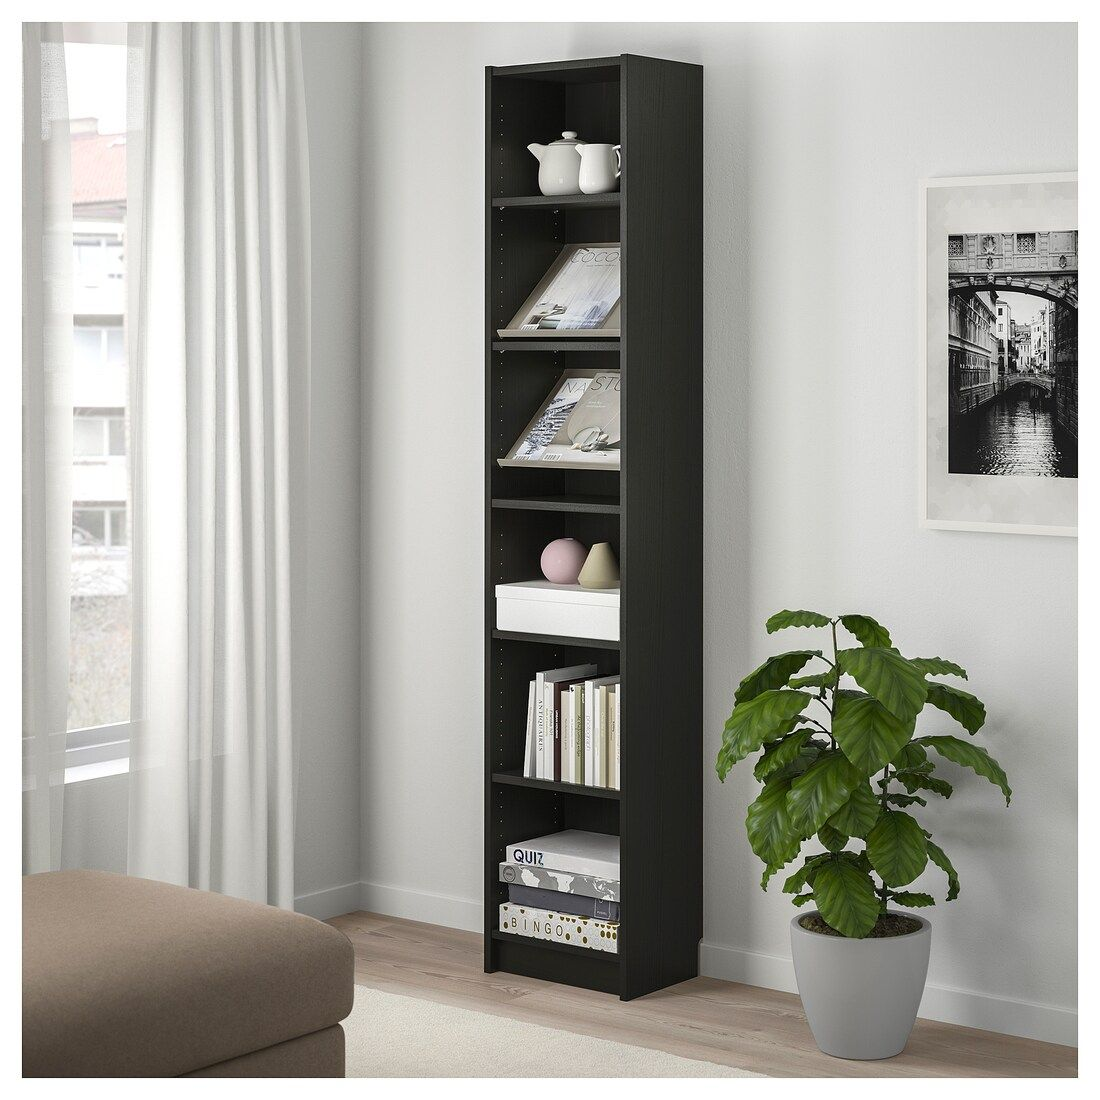 Billy Bottna Bookcase With Display Shelf Black Brown Beige 15 3 4x11x79 1 2 Ikea Display Shelves Display Shelves Ikea Shelves